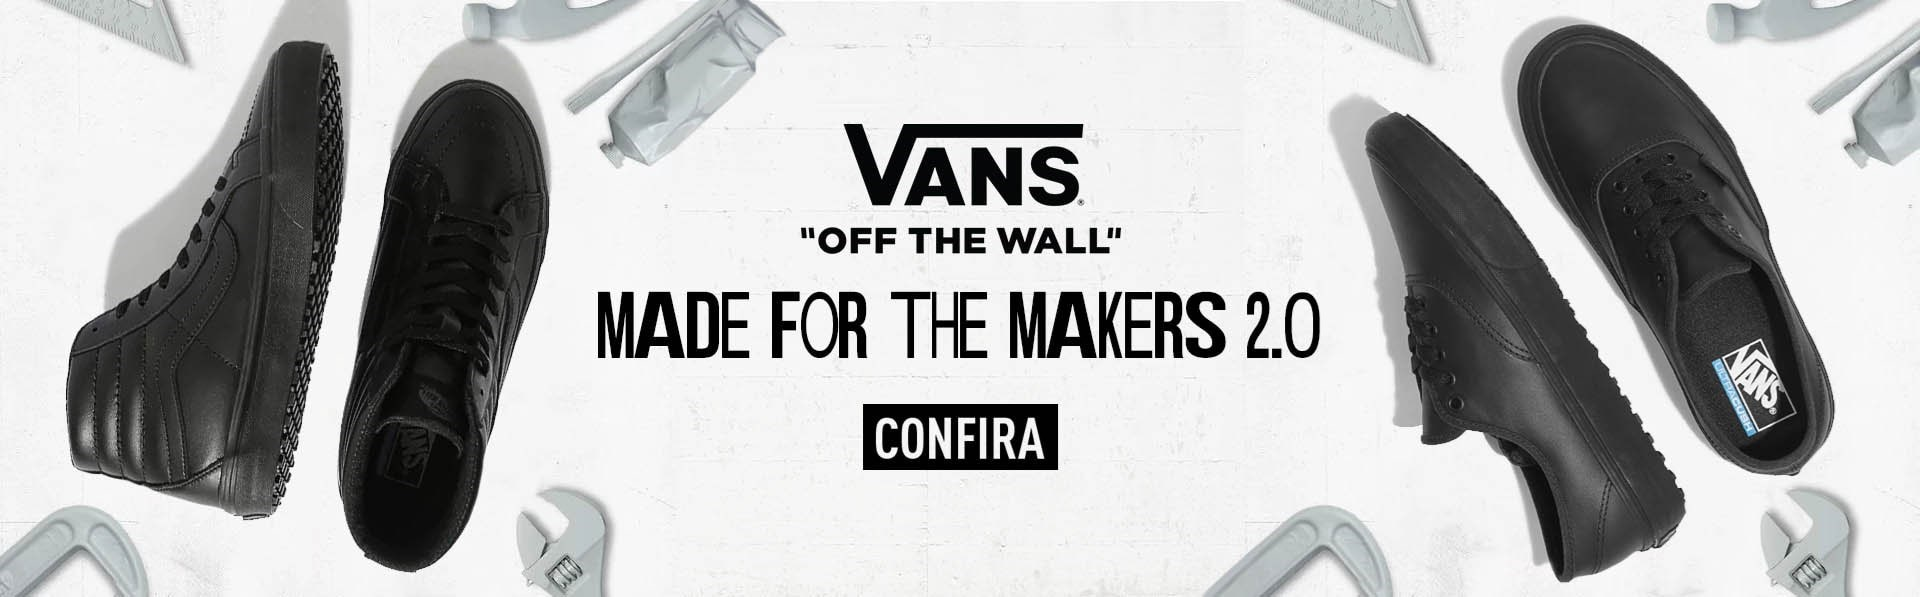 Vans Made for makers